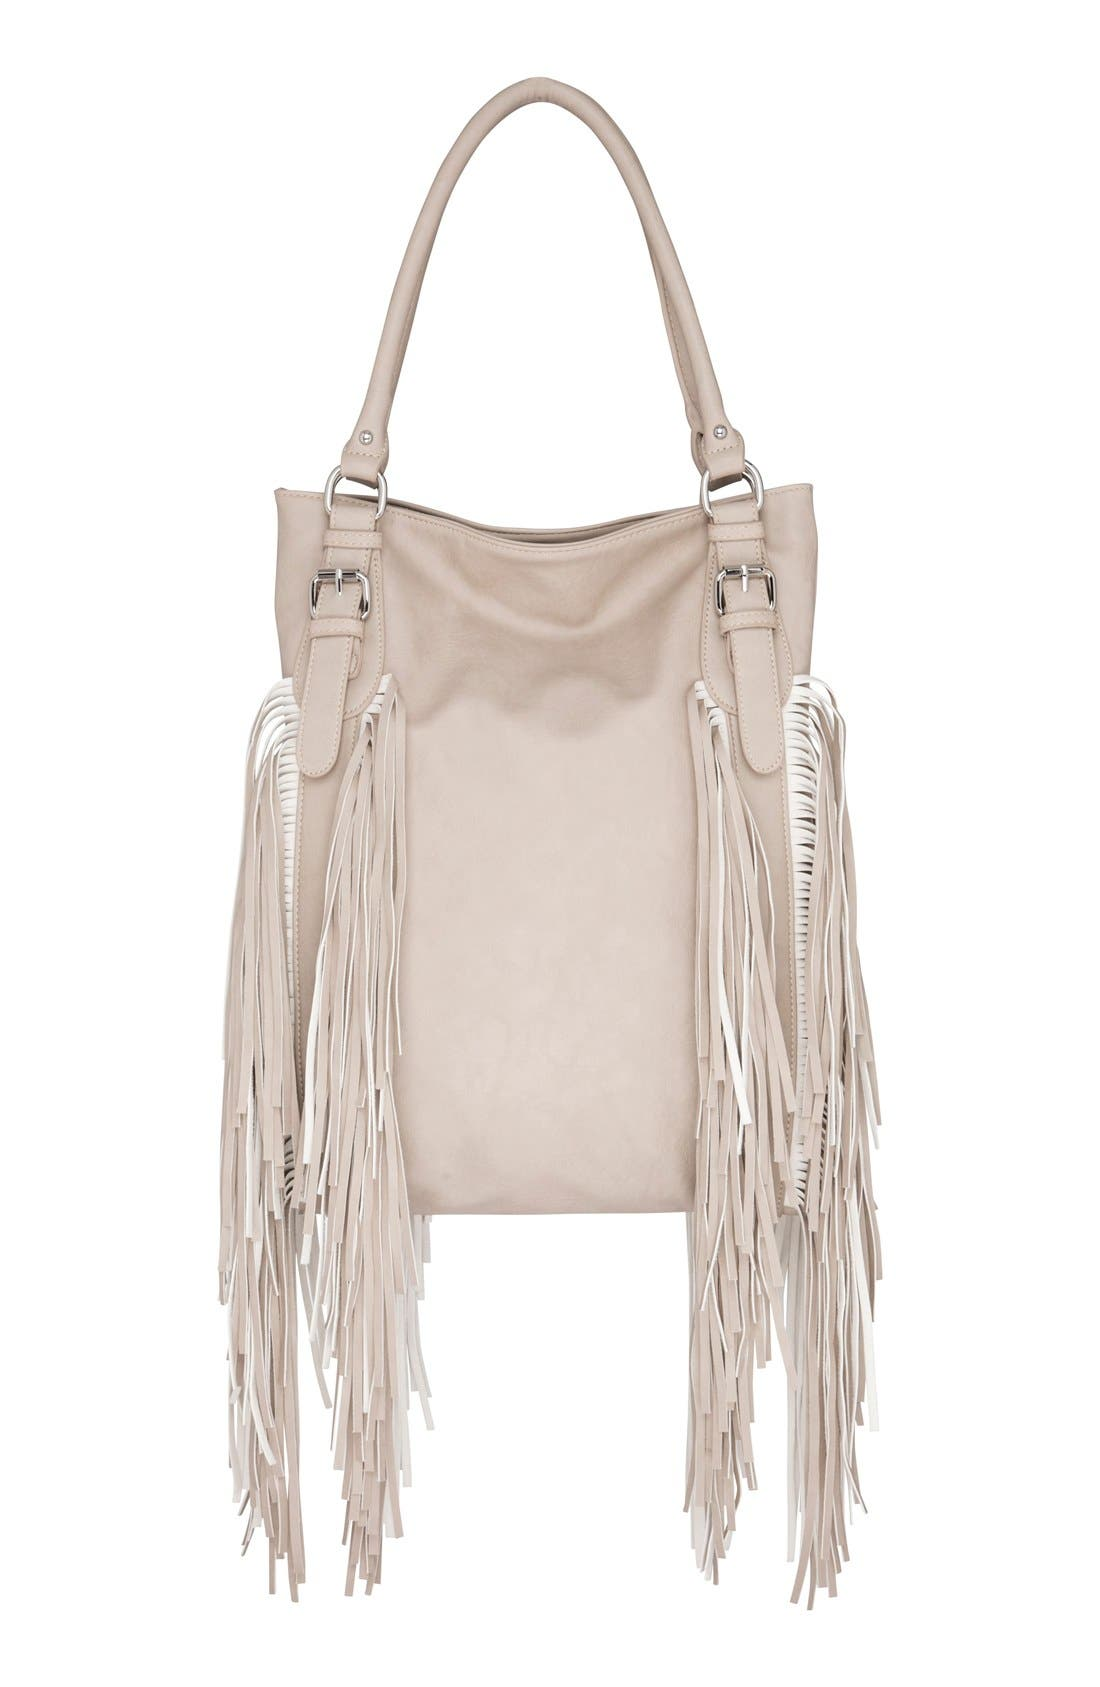 Main Image - Urban Originals 'Crazyheart' Fringe Faux Leather Tote